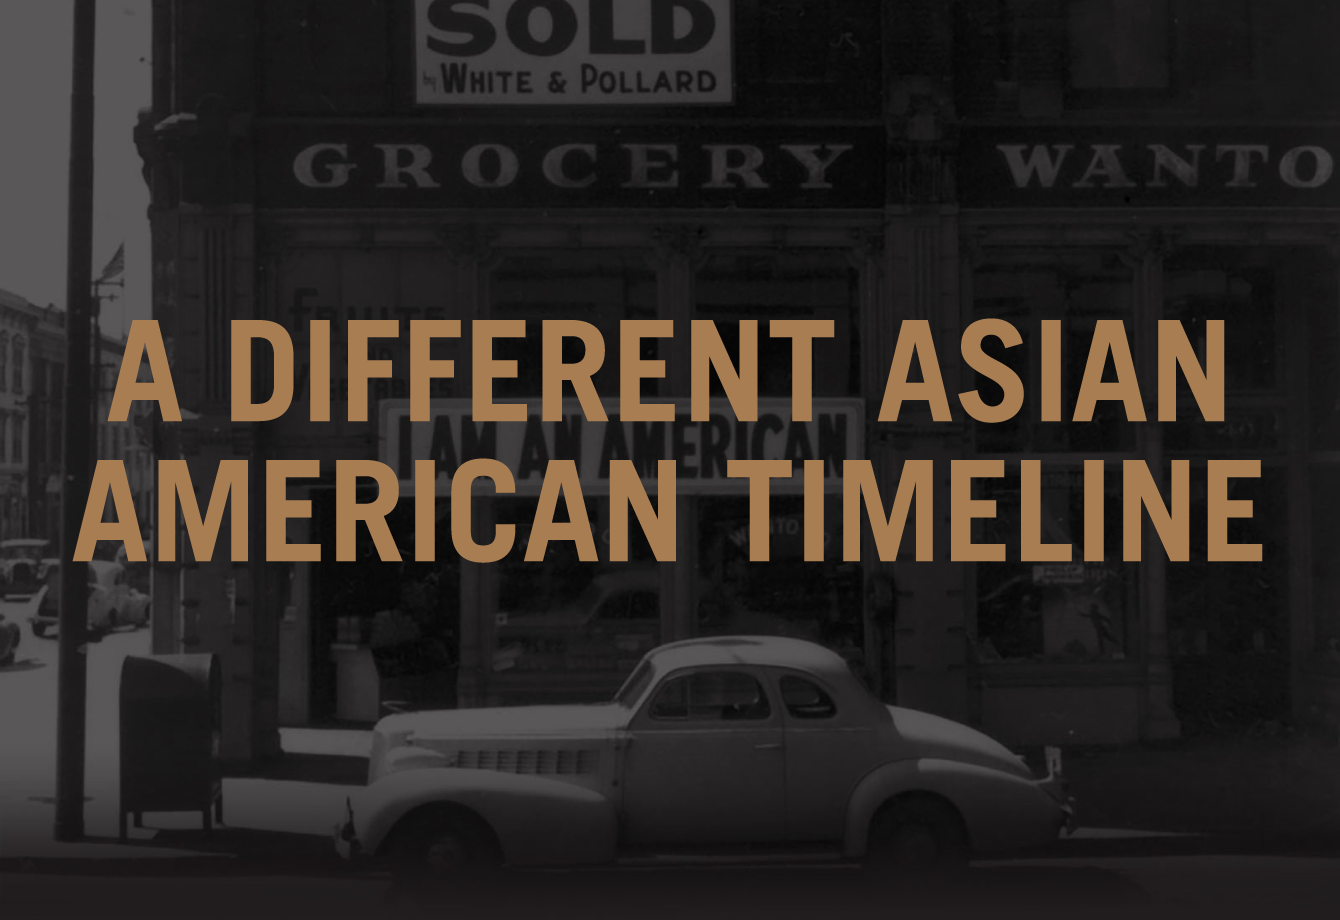 A Diffferent Asian American Timeline